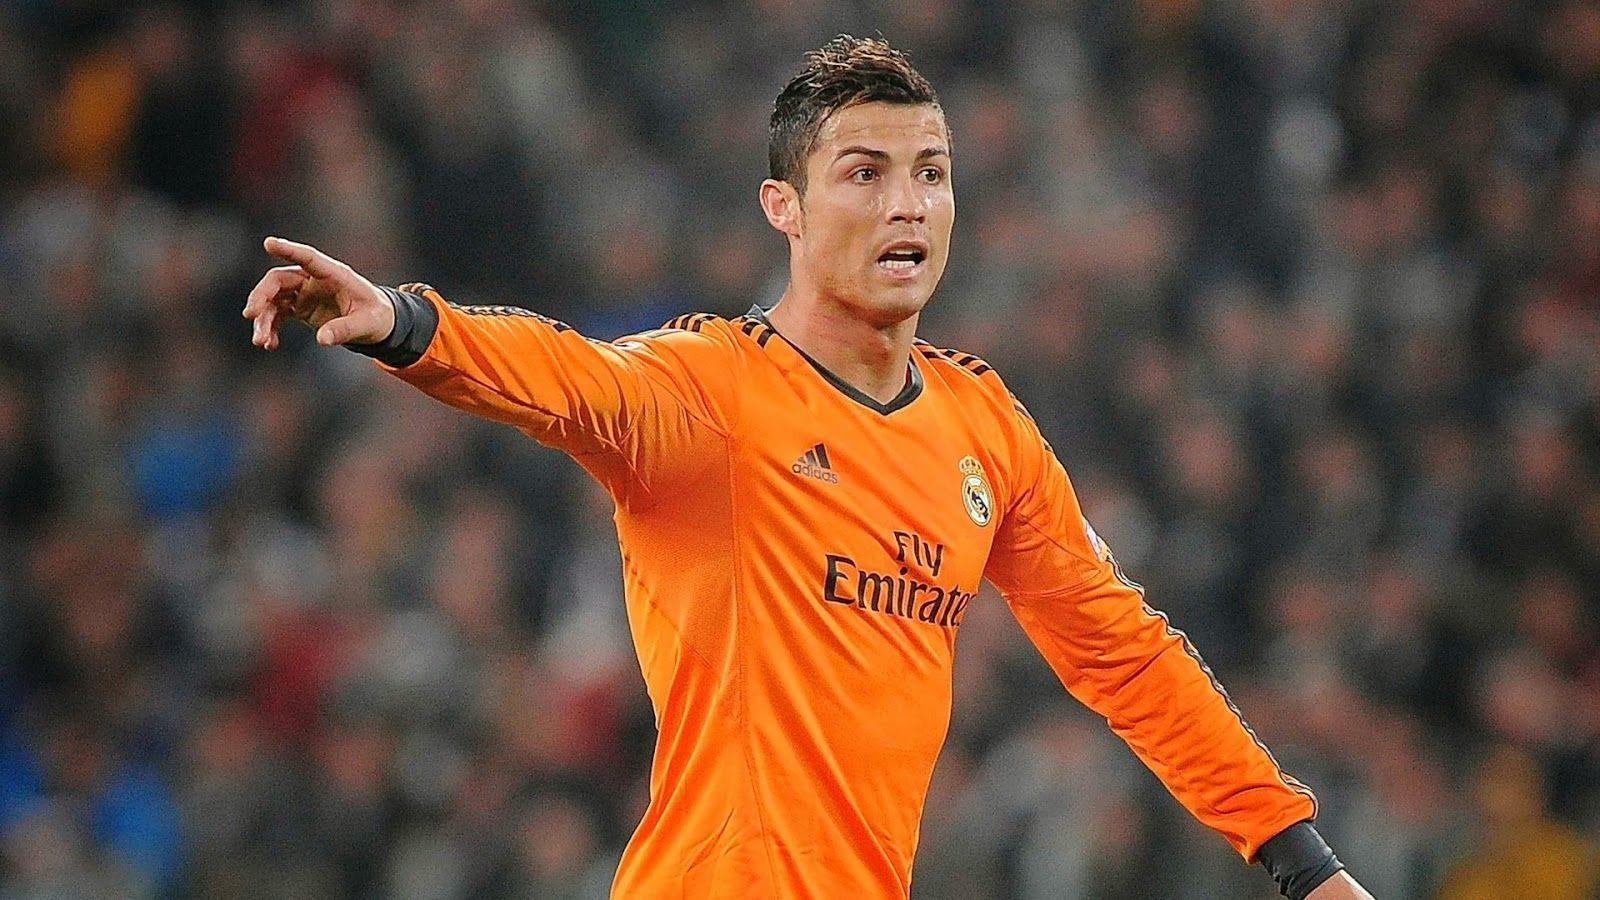 Cristiano Ronaldo Football Player Latest HD Wallpapers